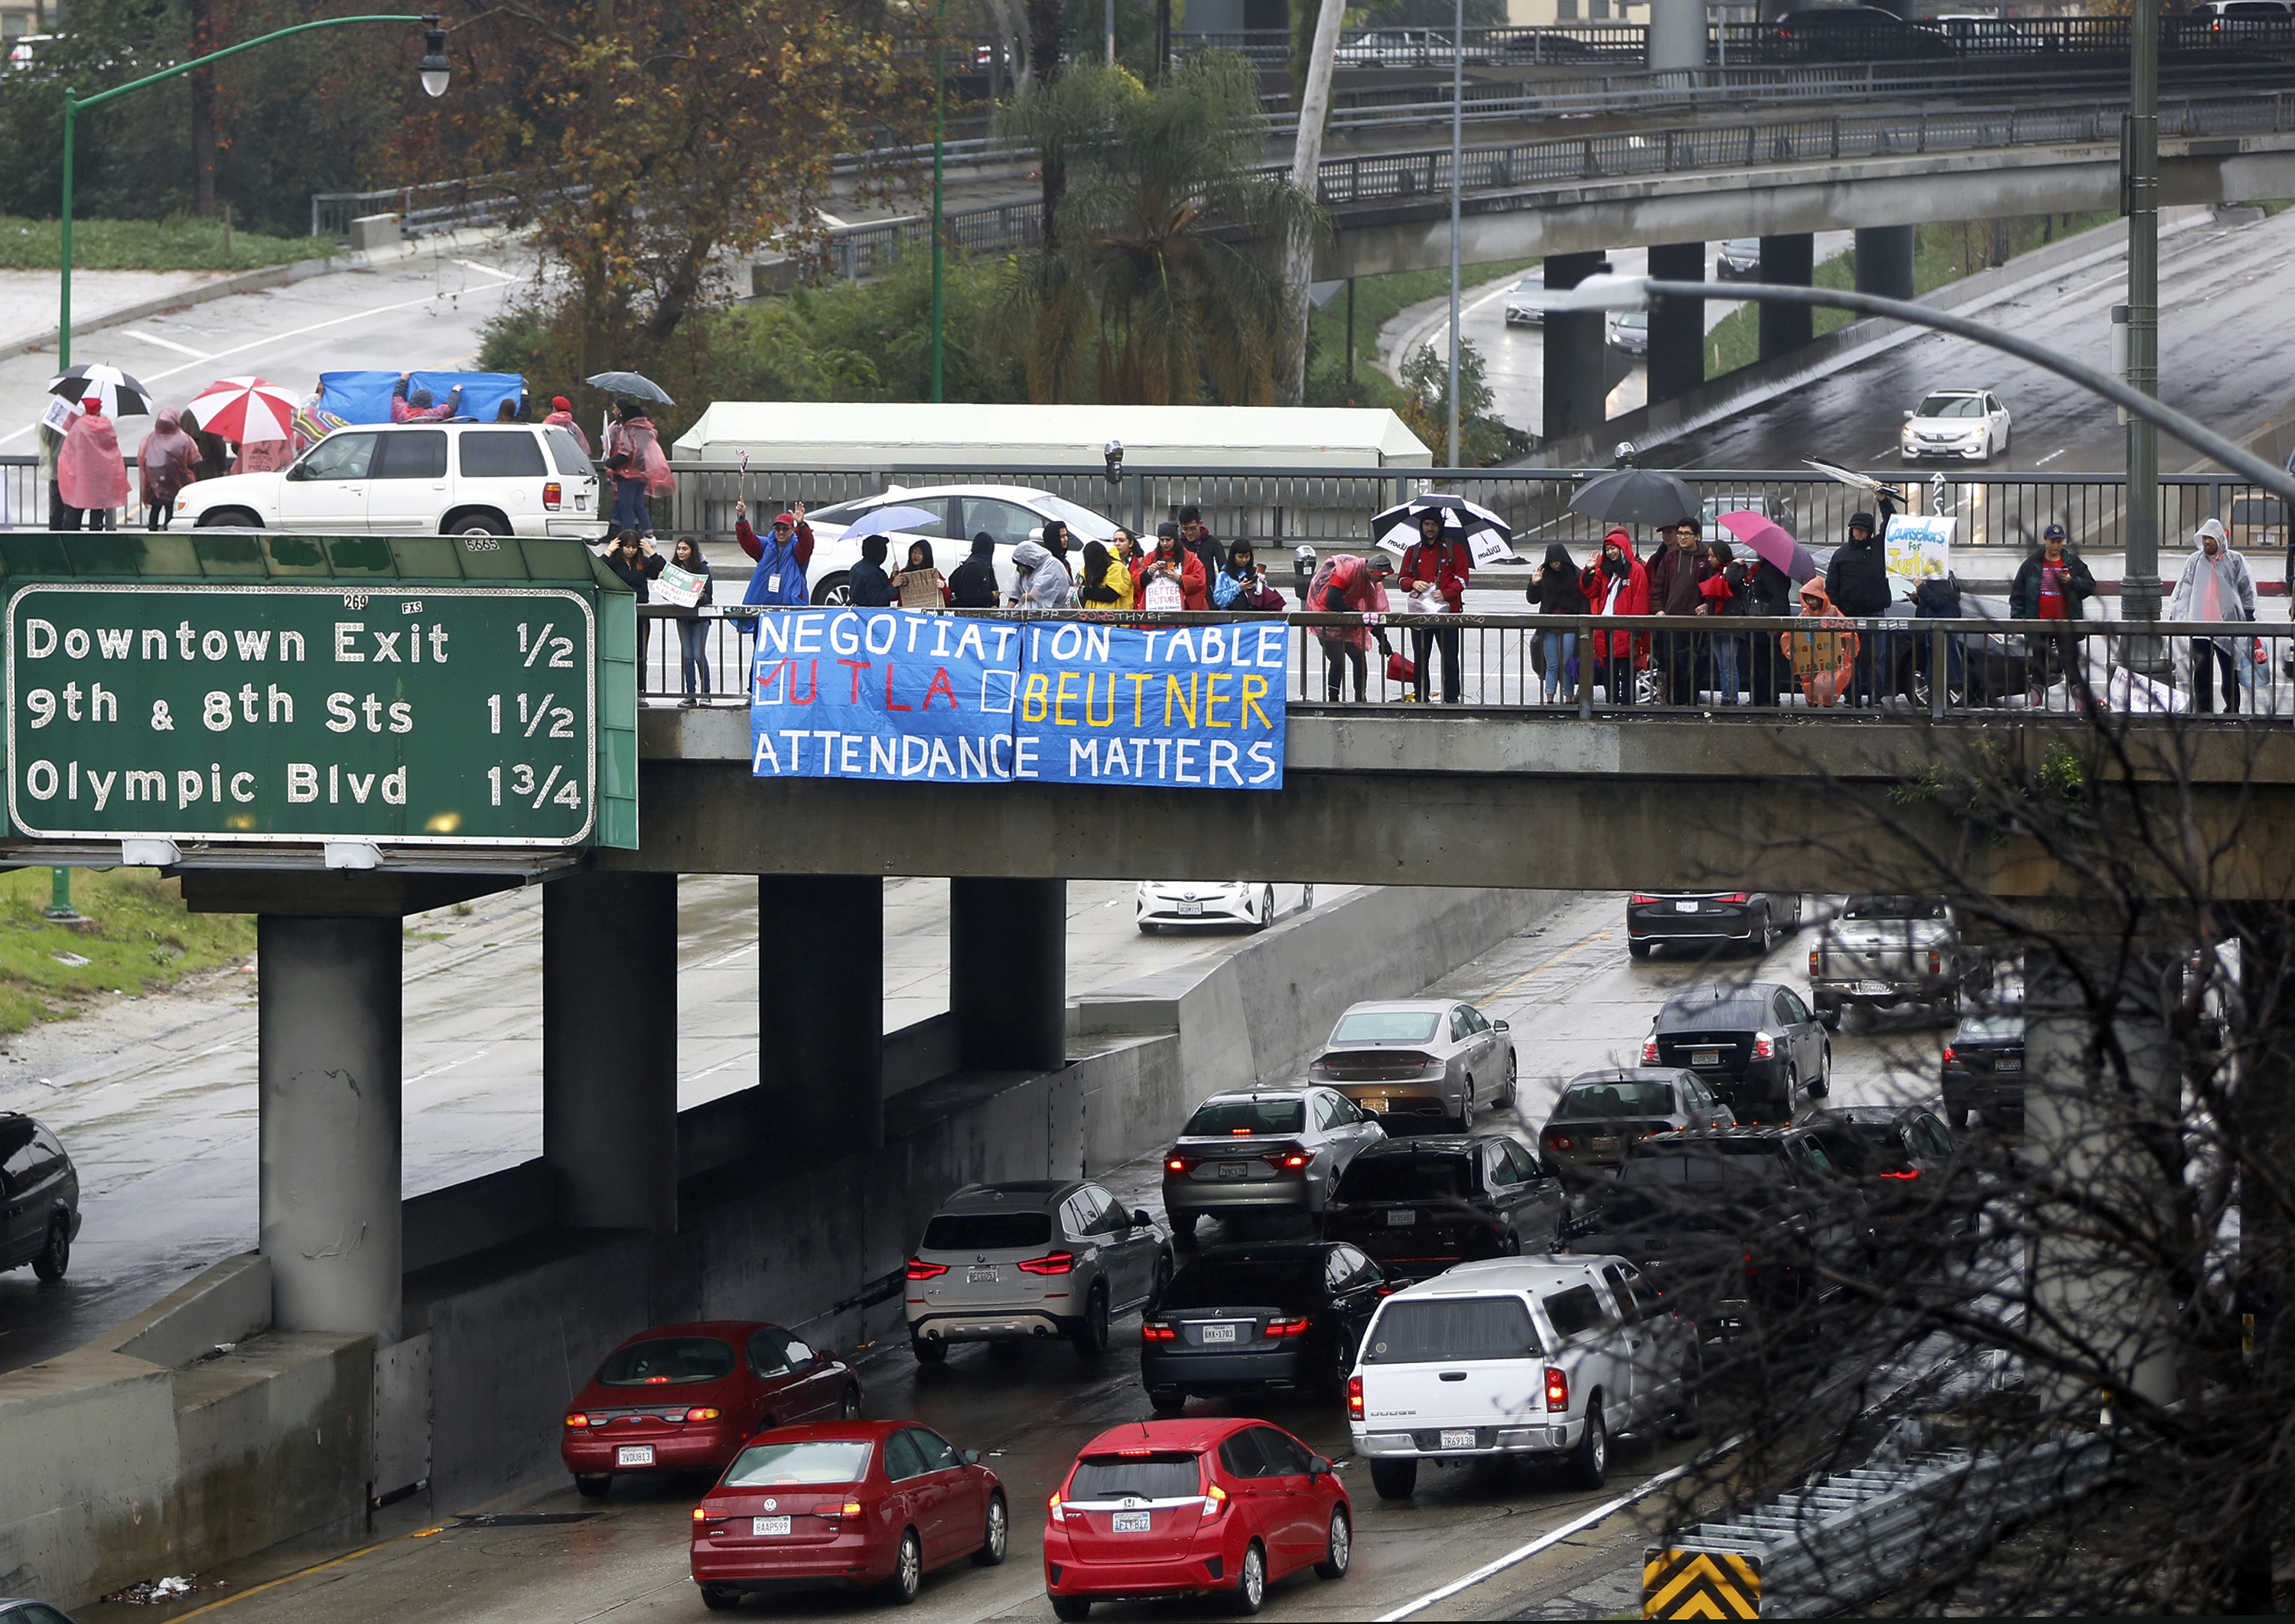 Teachers, parents and children picket despite heavy rain drenching downtown Los Angeles Thursday, Jan. 17, 2019. A new round of contract negotiations began between Los Angeles school district officials and a teachers union as thousands of educators picketed in the rain. The announcement that the two sides were sitting down Thursday for the first time in nearly a week didn't indicate whether any new contract offers would be on the table. Union officials tempered expectations, saying a quick deal was unlikely. District officials have said teacher demands could bankrupt the school system.  (AP Photo/Damian Dovarganes)